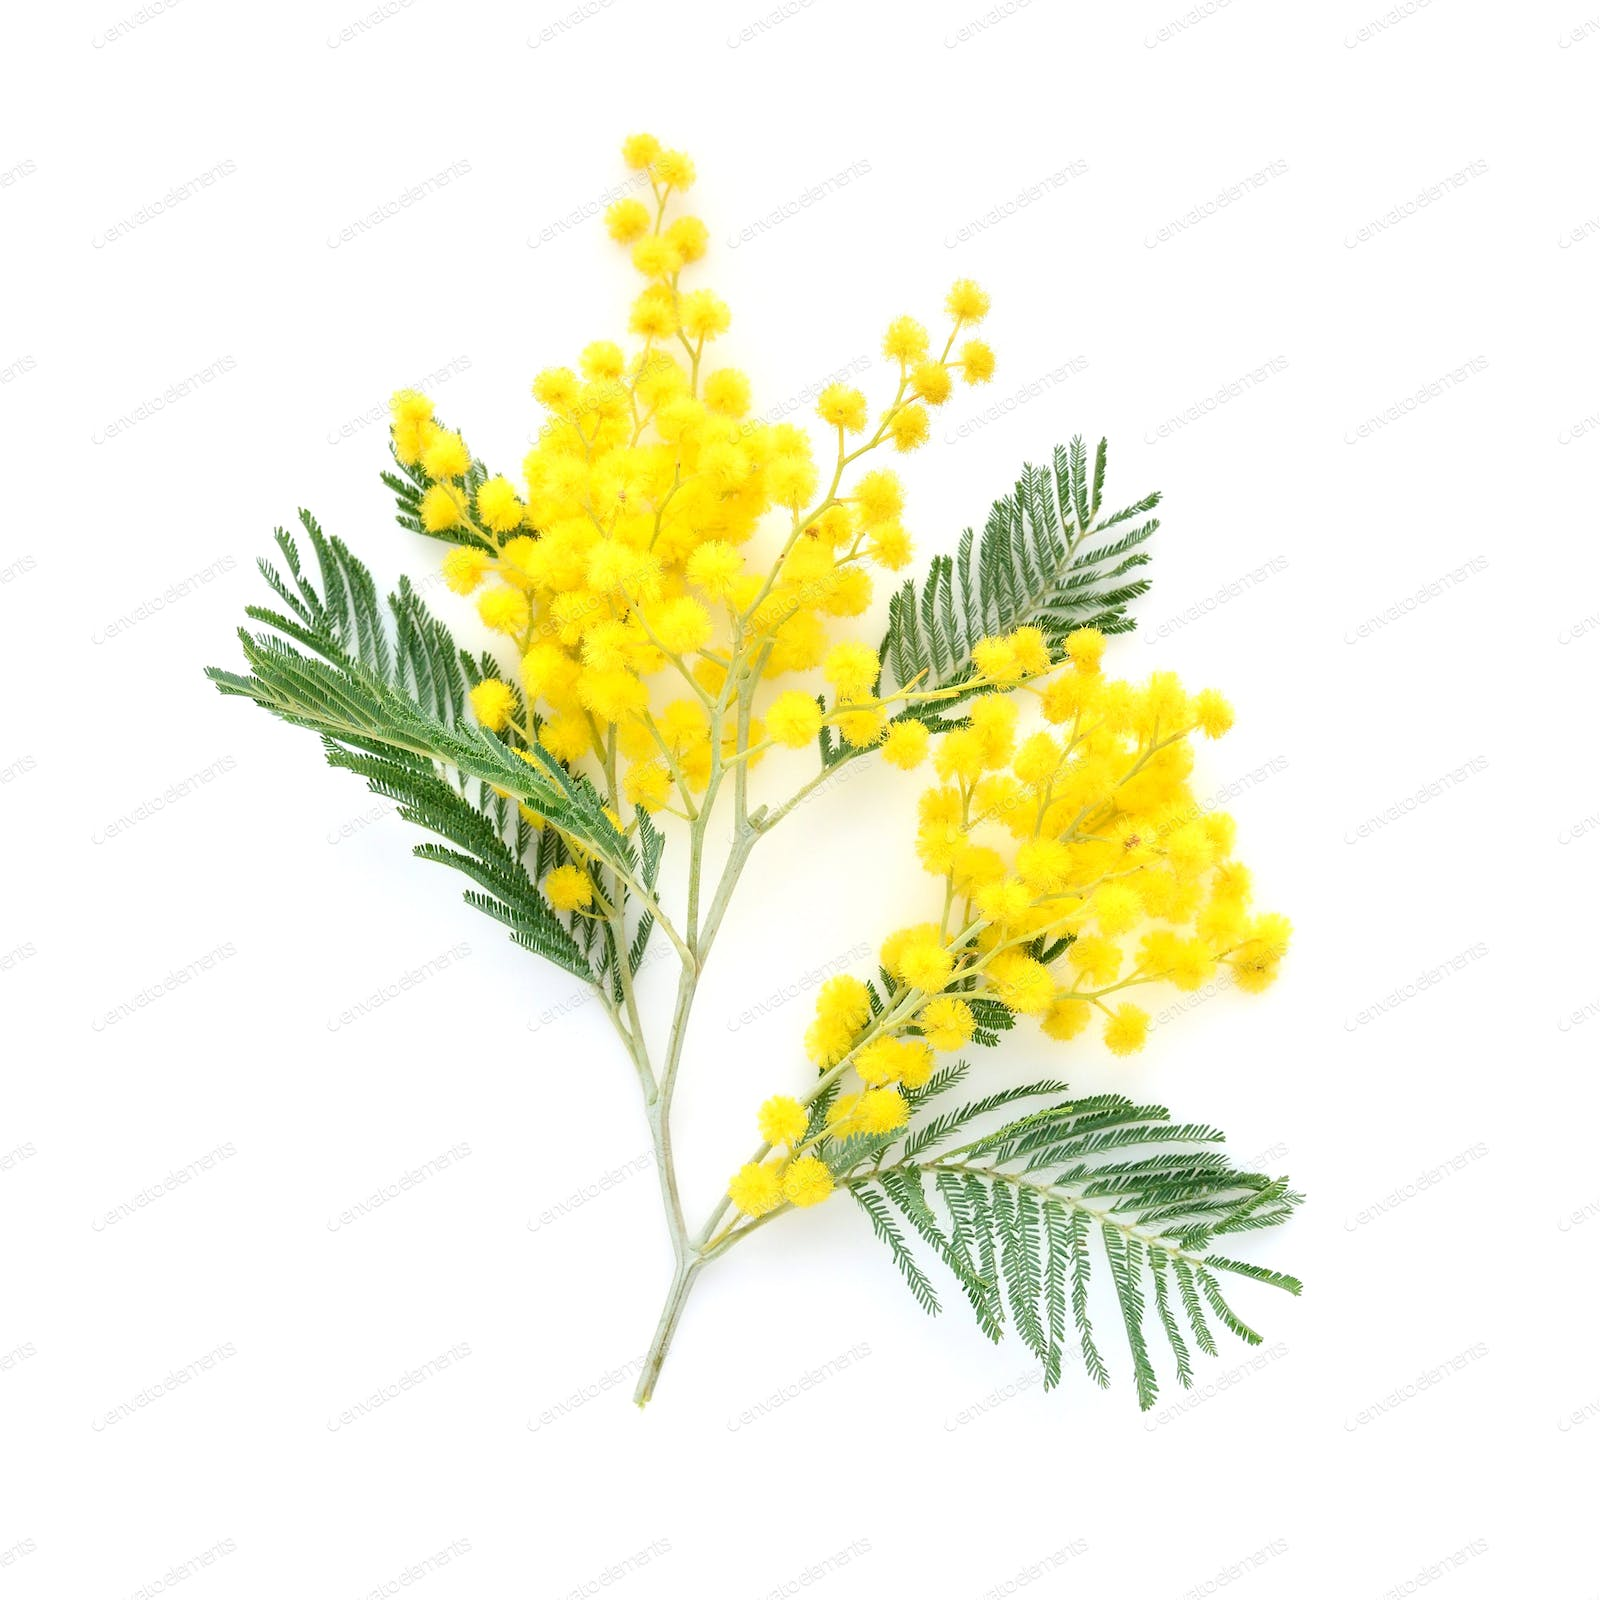 Mimosa (silver wattle) branch isolated on white background photo by